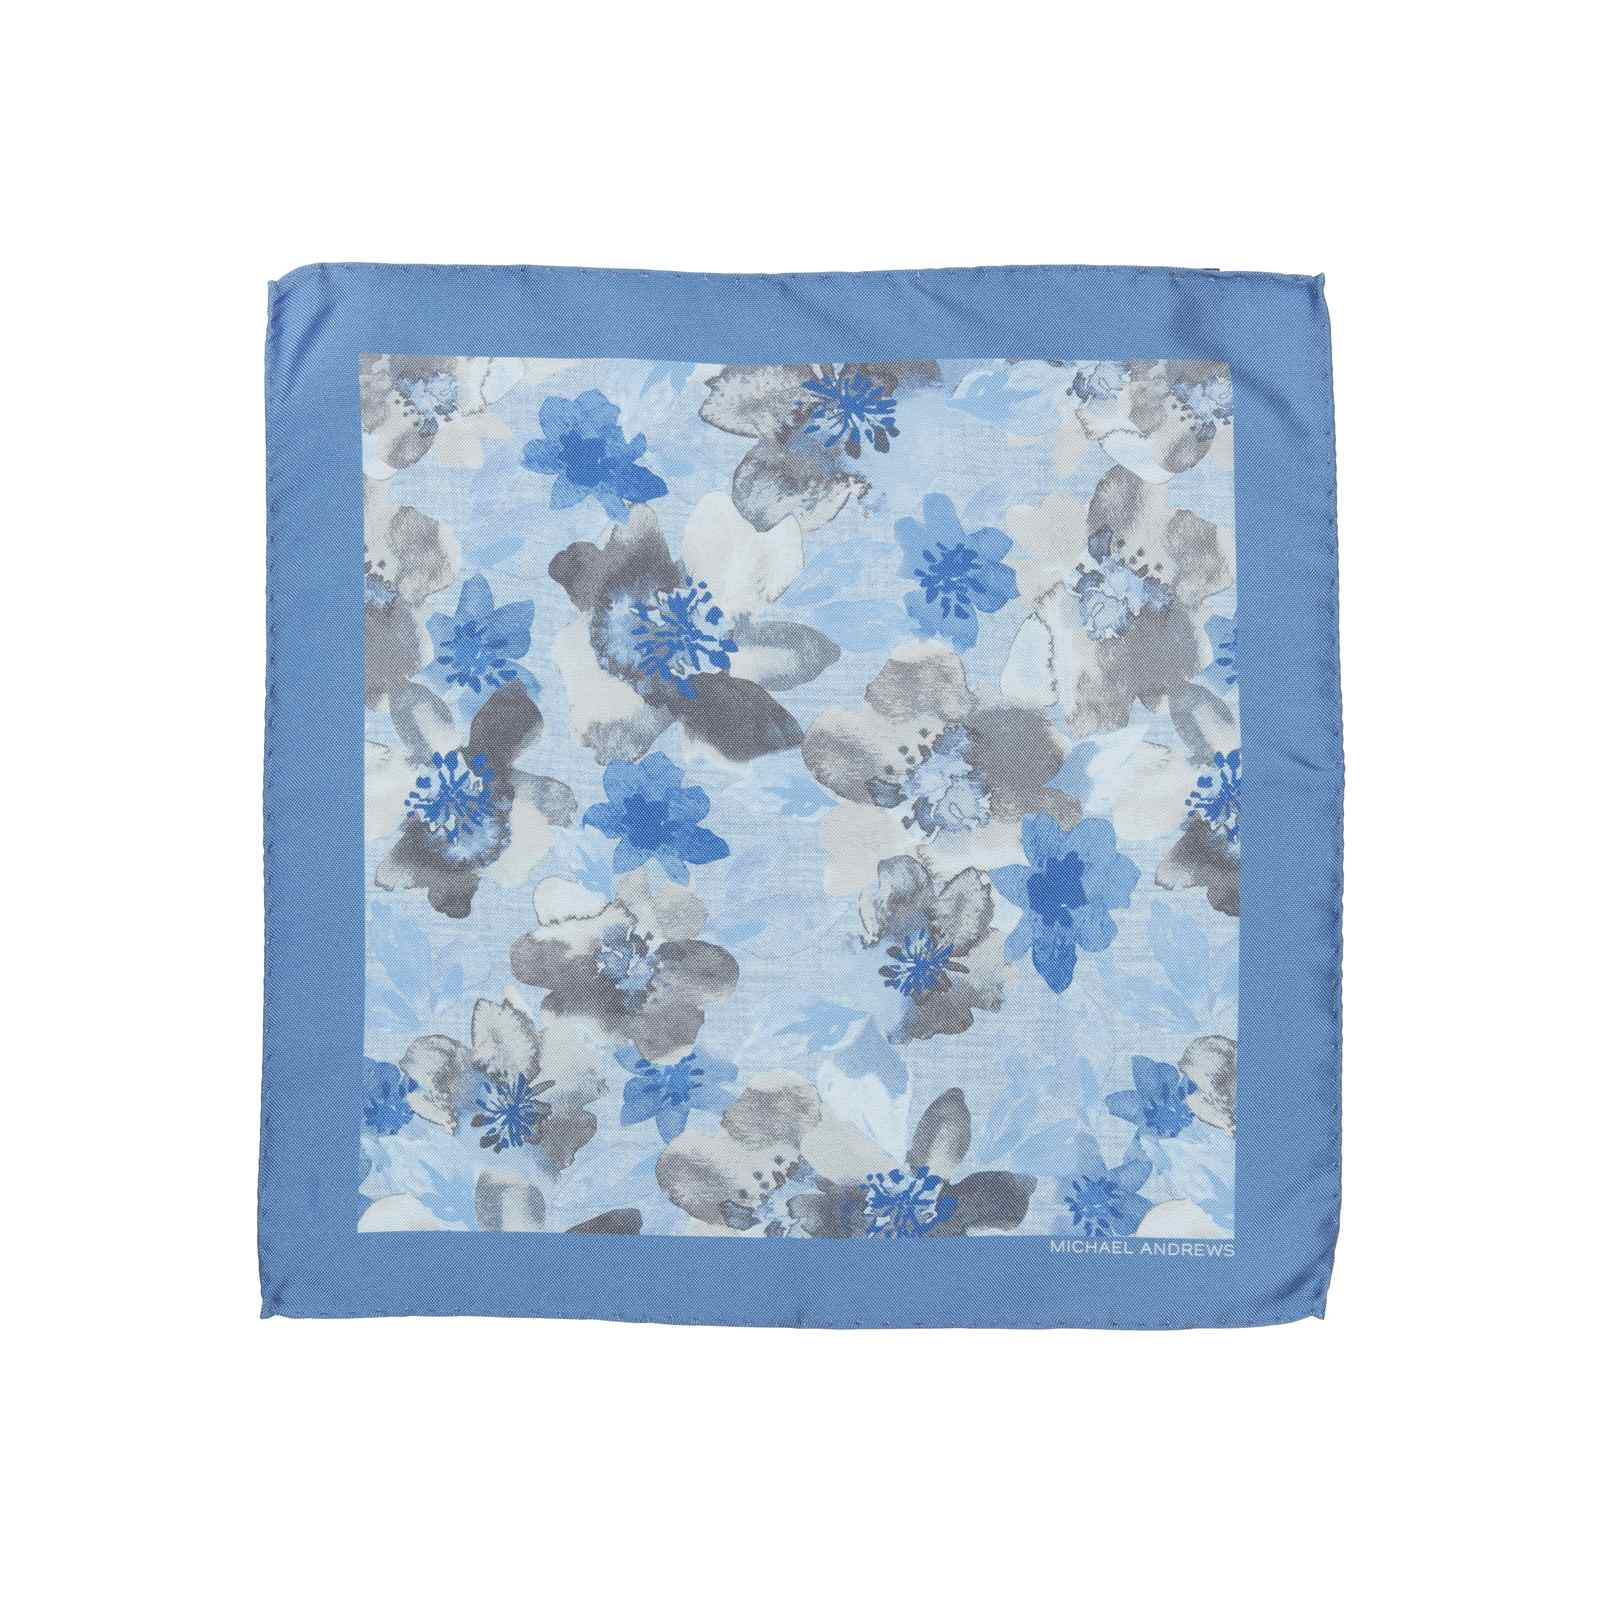 Light Blue with Sky Blue & Grey Watercolor Floral Pocket Square